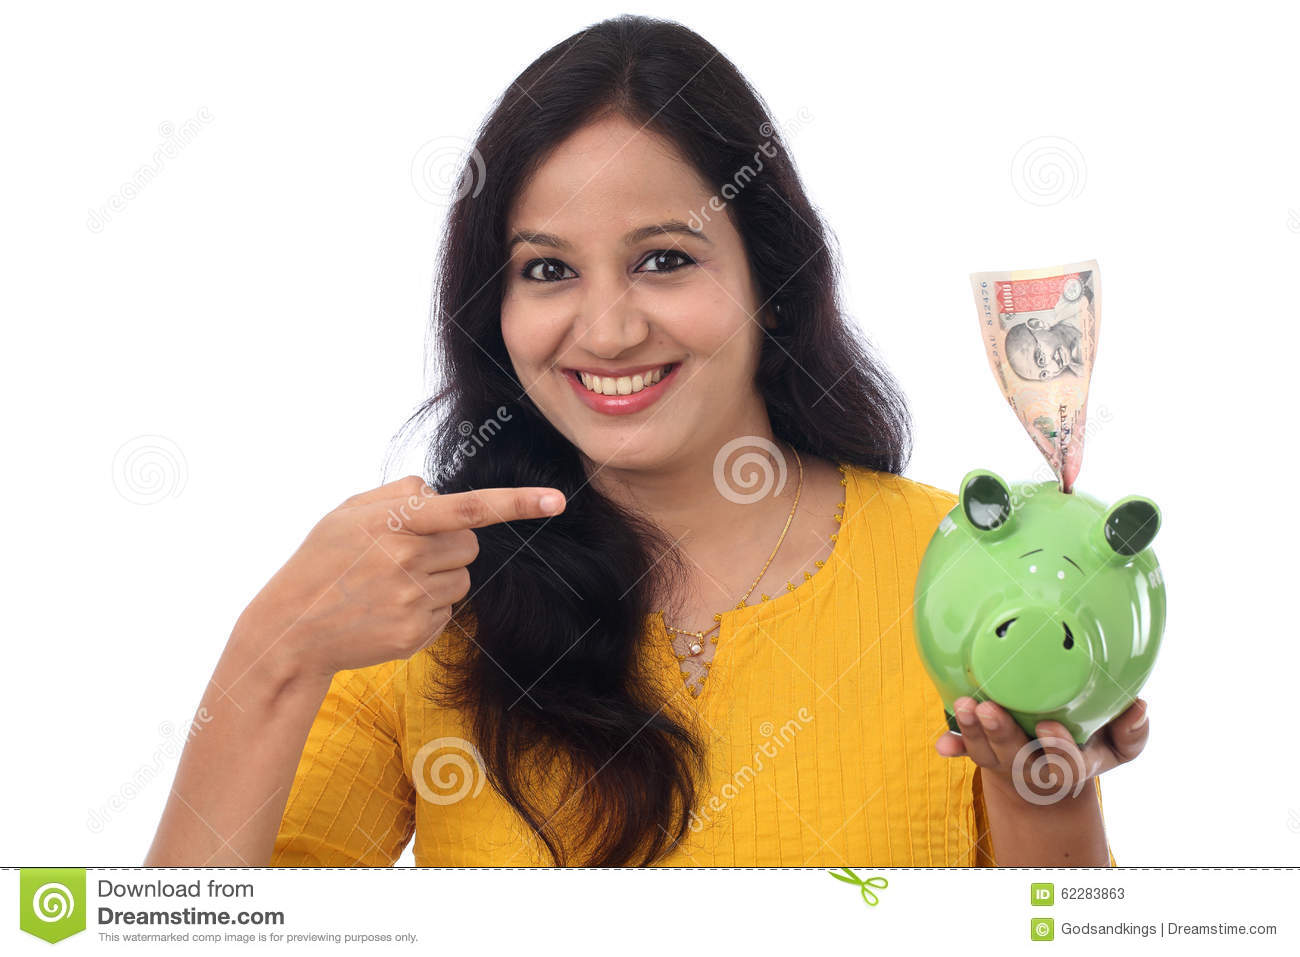 cash hindu single women The bbc's rupa jha talks to four single women living in india india's invisible women will be on bbc world news on friday what raised the most cash.